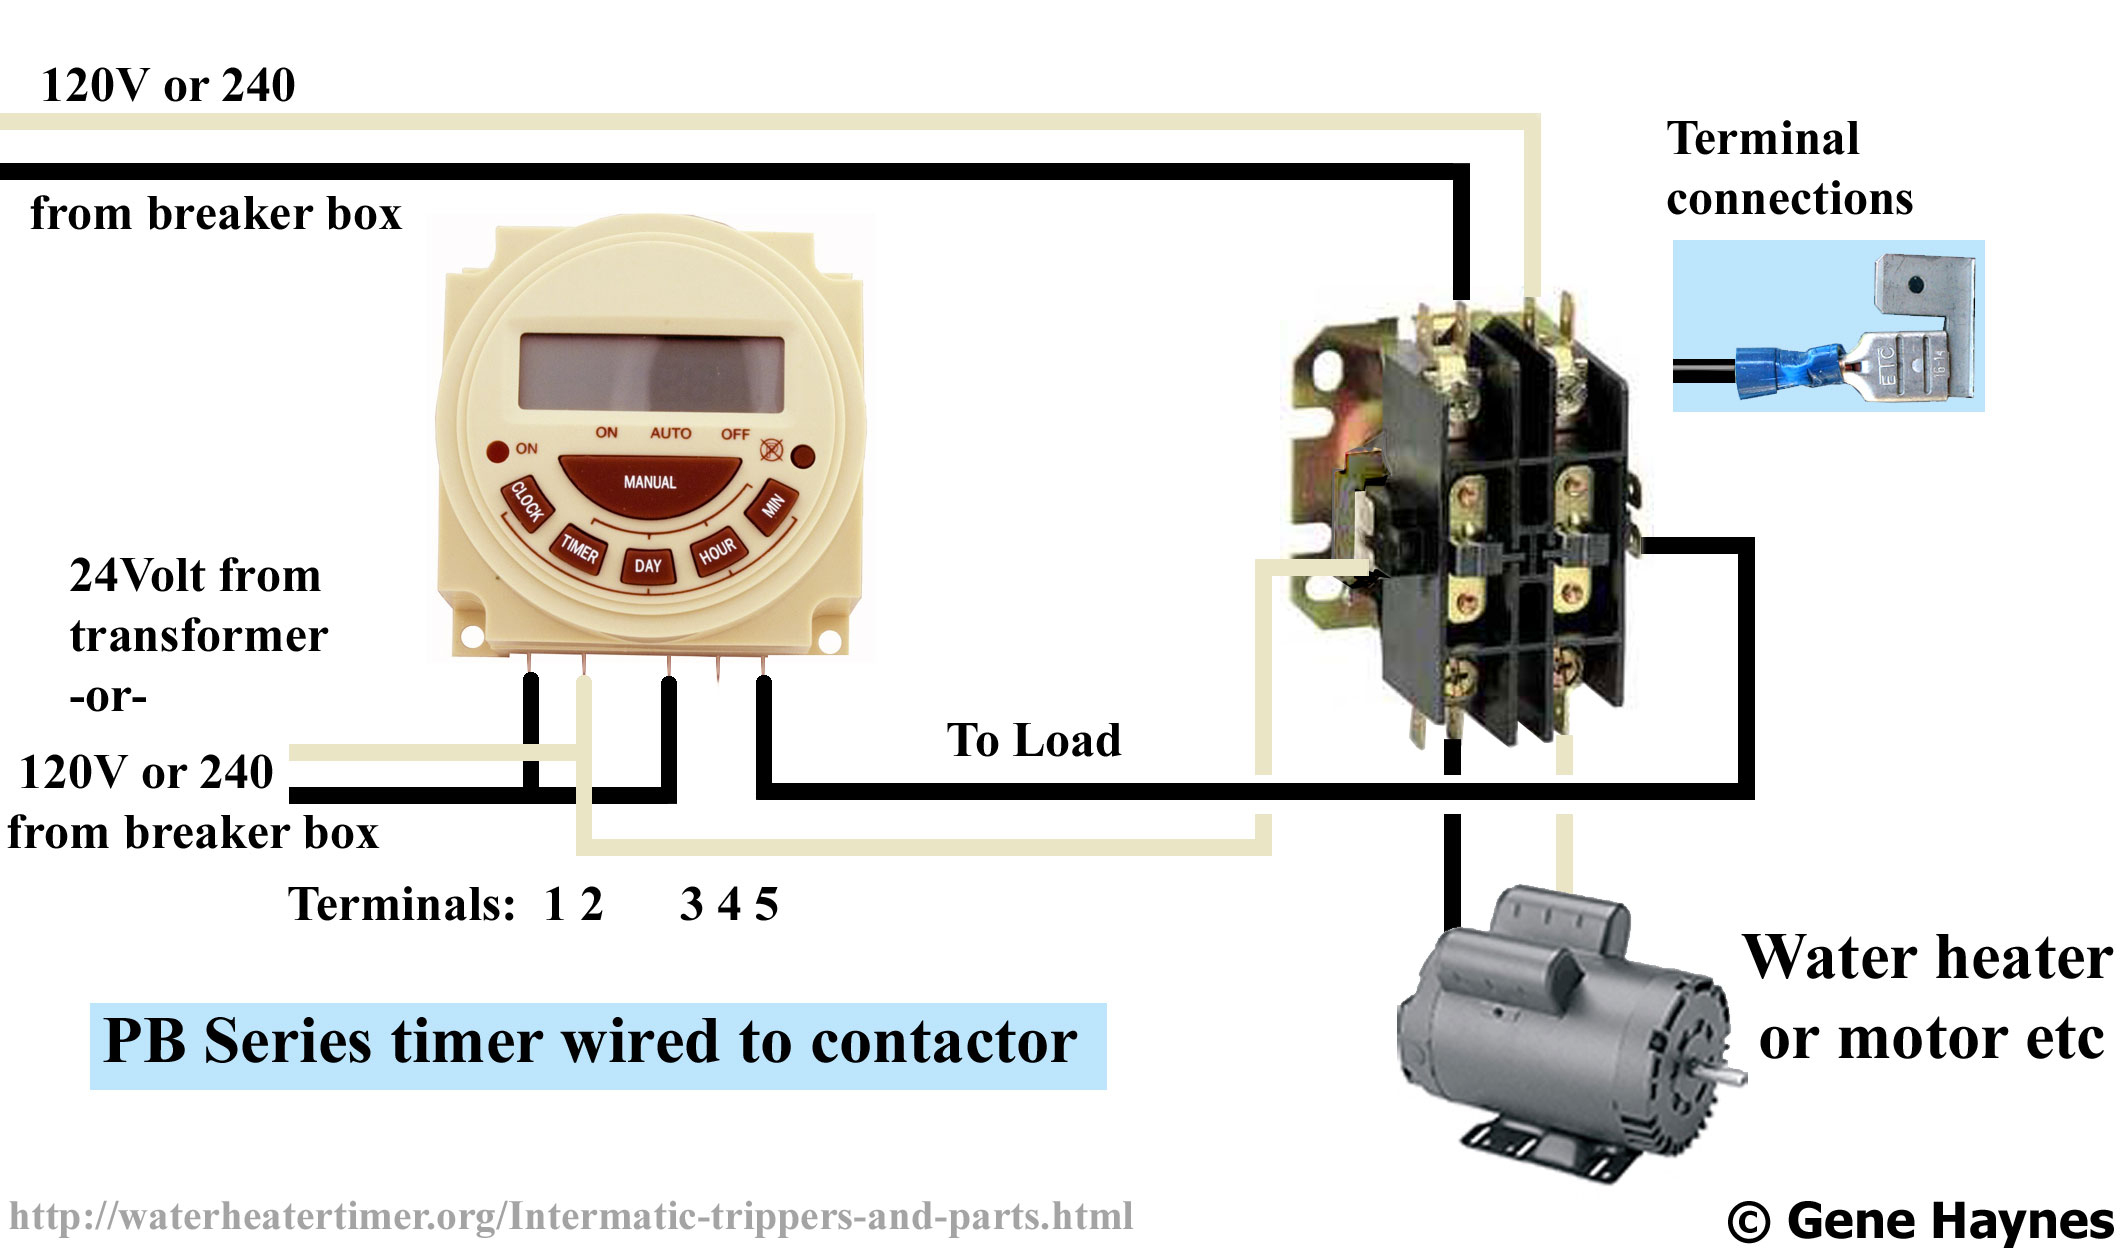 [QNCB_7524]  42Jw [DIAGRAM] Ac Contactor Wiring Diagram 240 FULL Version HD Quality Diagram  240 - CPANEL.REVISTASMEDICASMEXICANAS.COM.MX | 240 Volt Contactor Wiring Diagram Free Download |  | Diagram Database